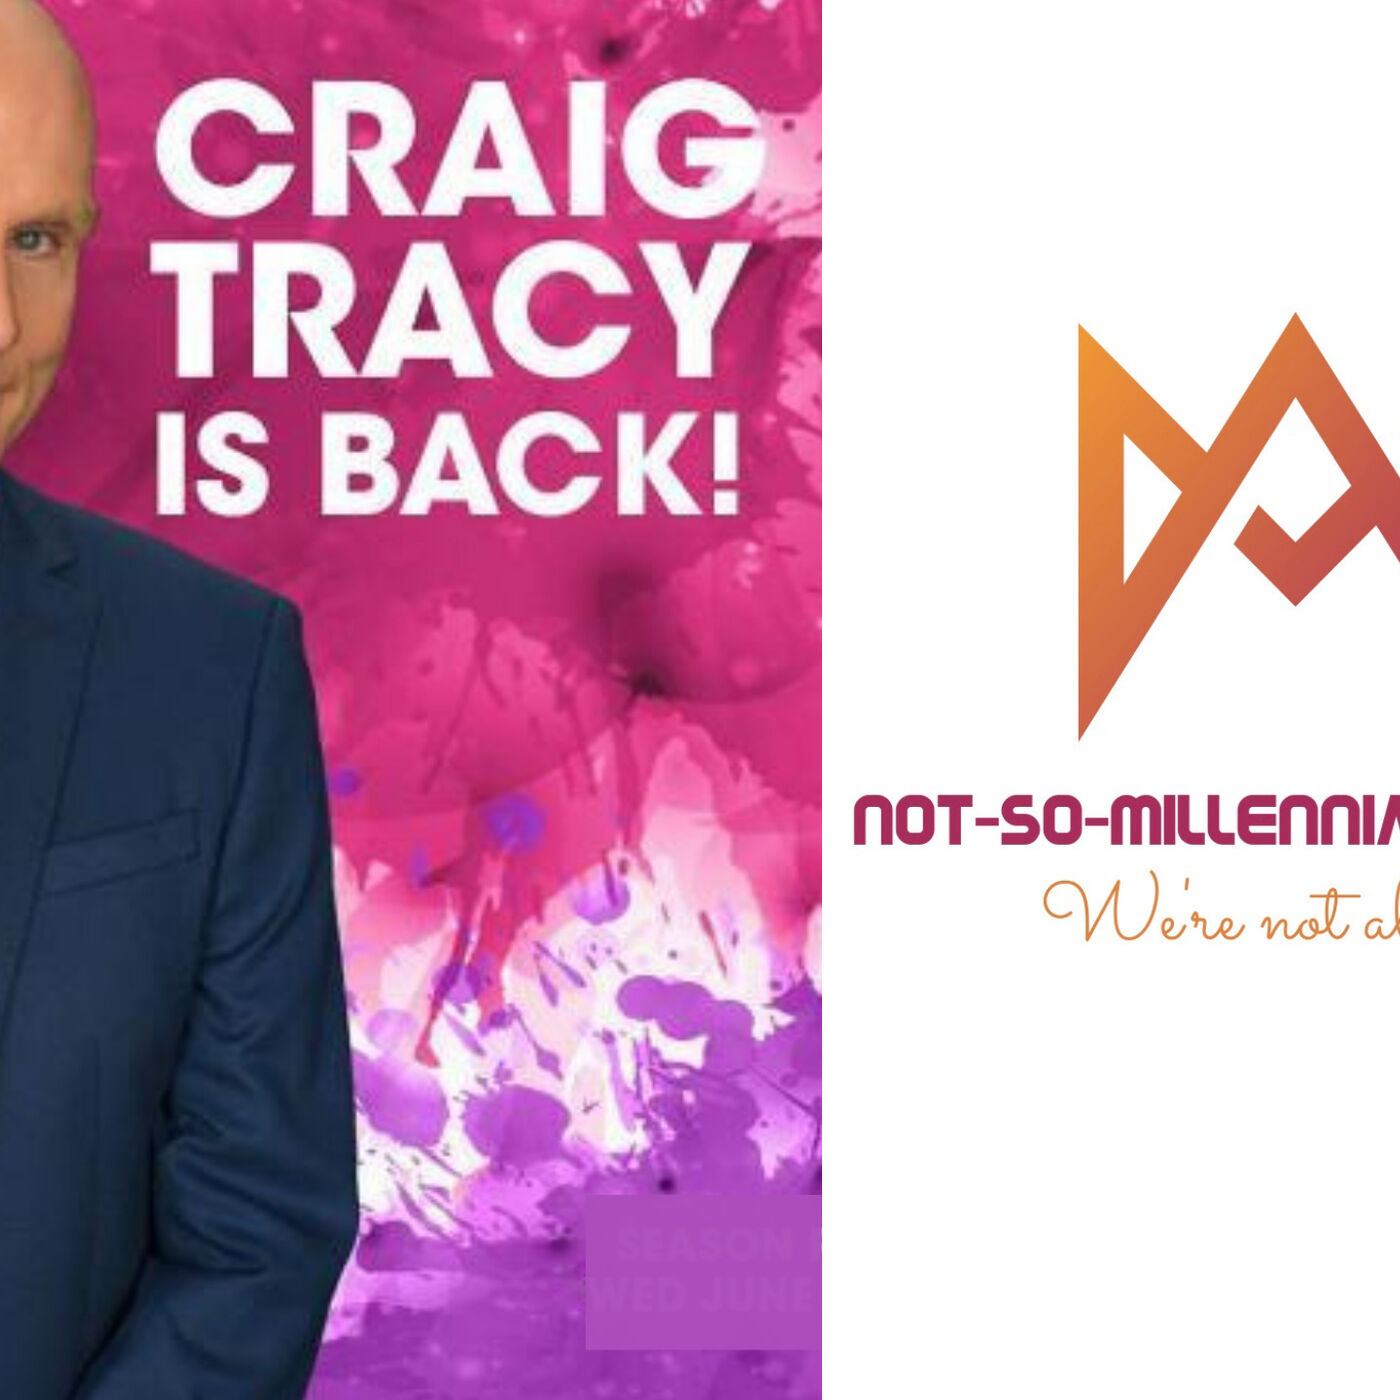 Not-So-Millennial Interviews Skin Wars Producer, Judge, and World-Renowned Body Painting Champion, Craig Tracy - Season 3 Ep.1